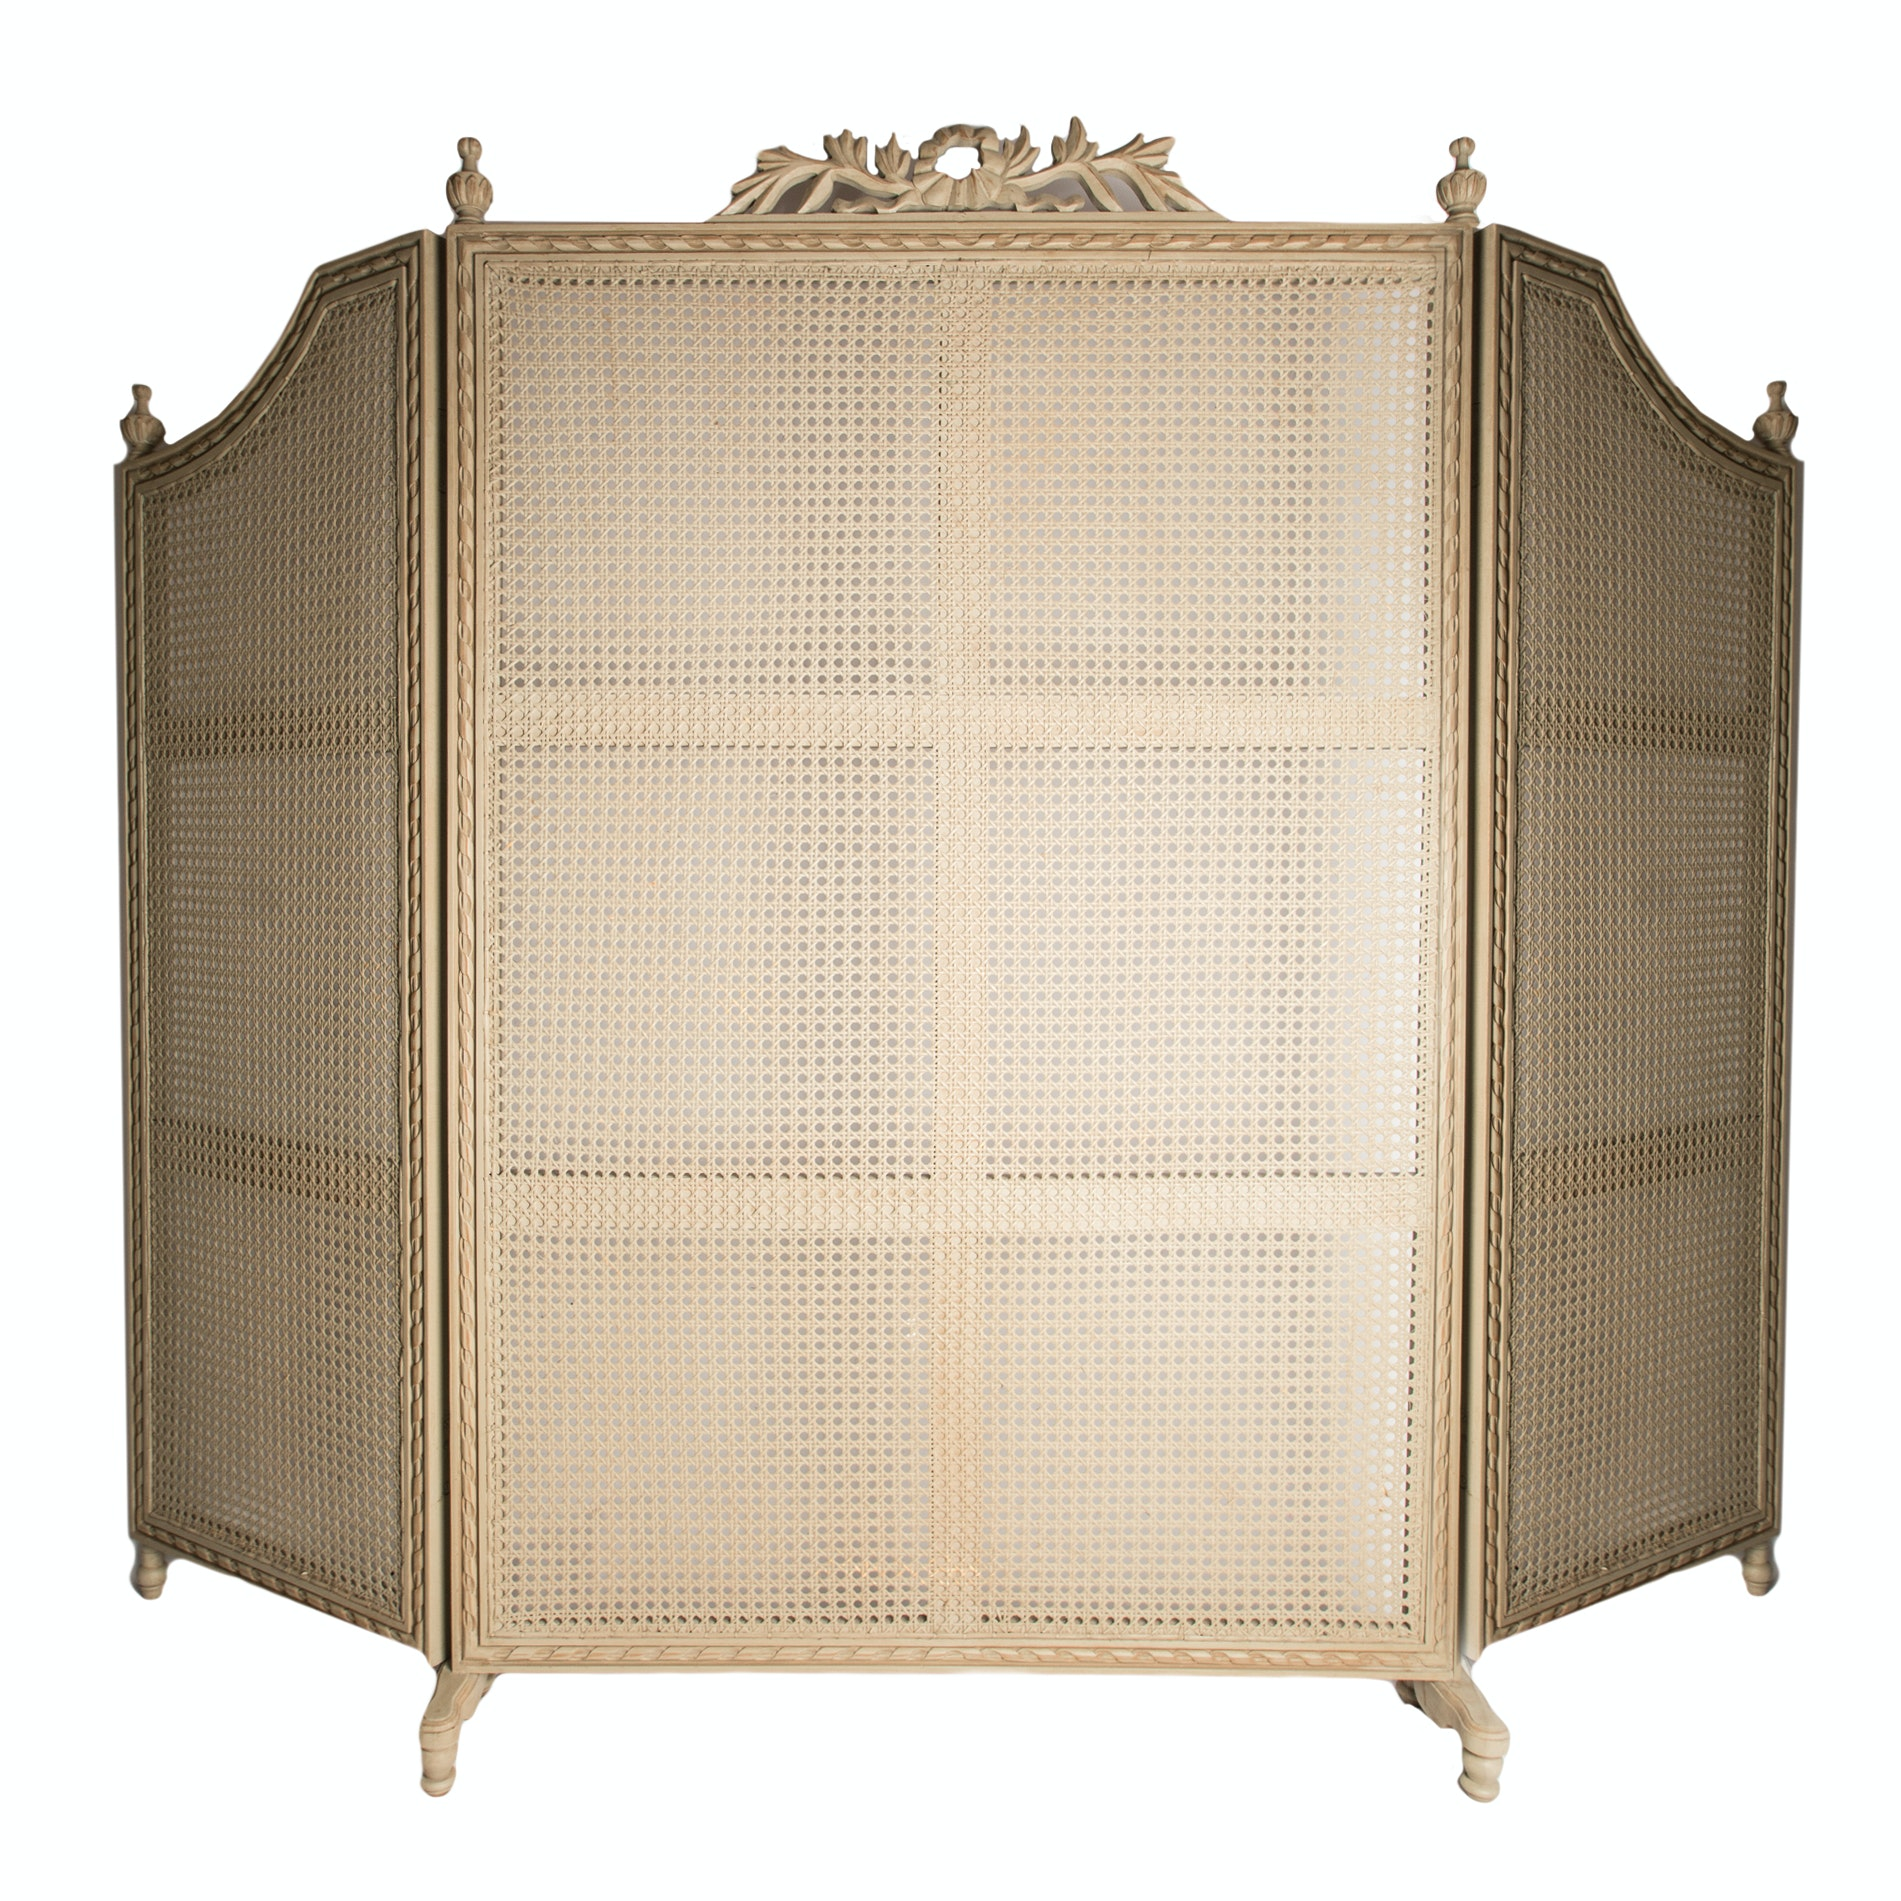 Vintage French Provincial Style Cane Room Divider EBTH